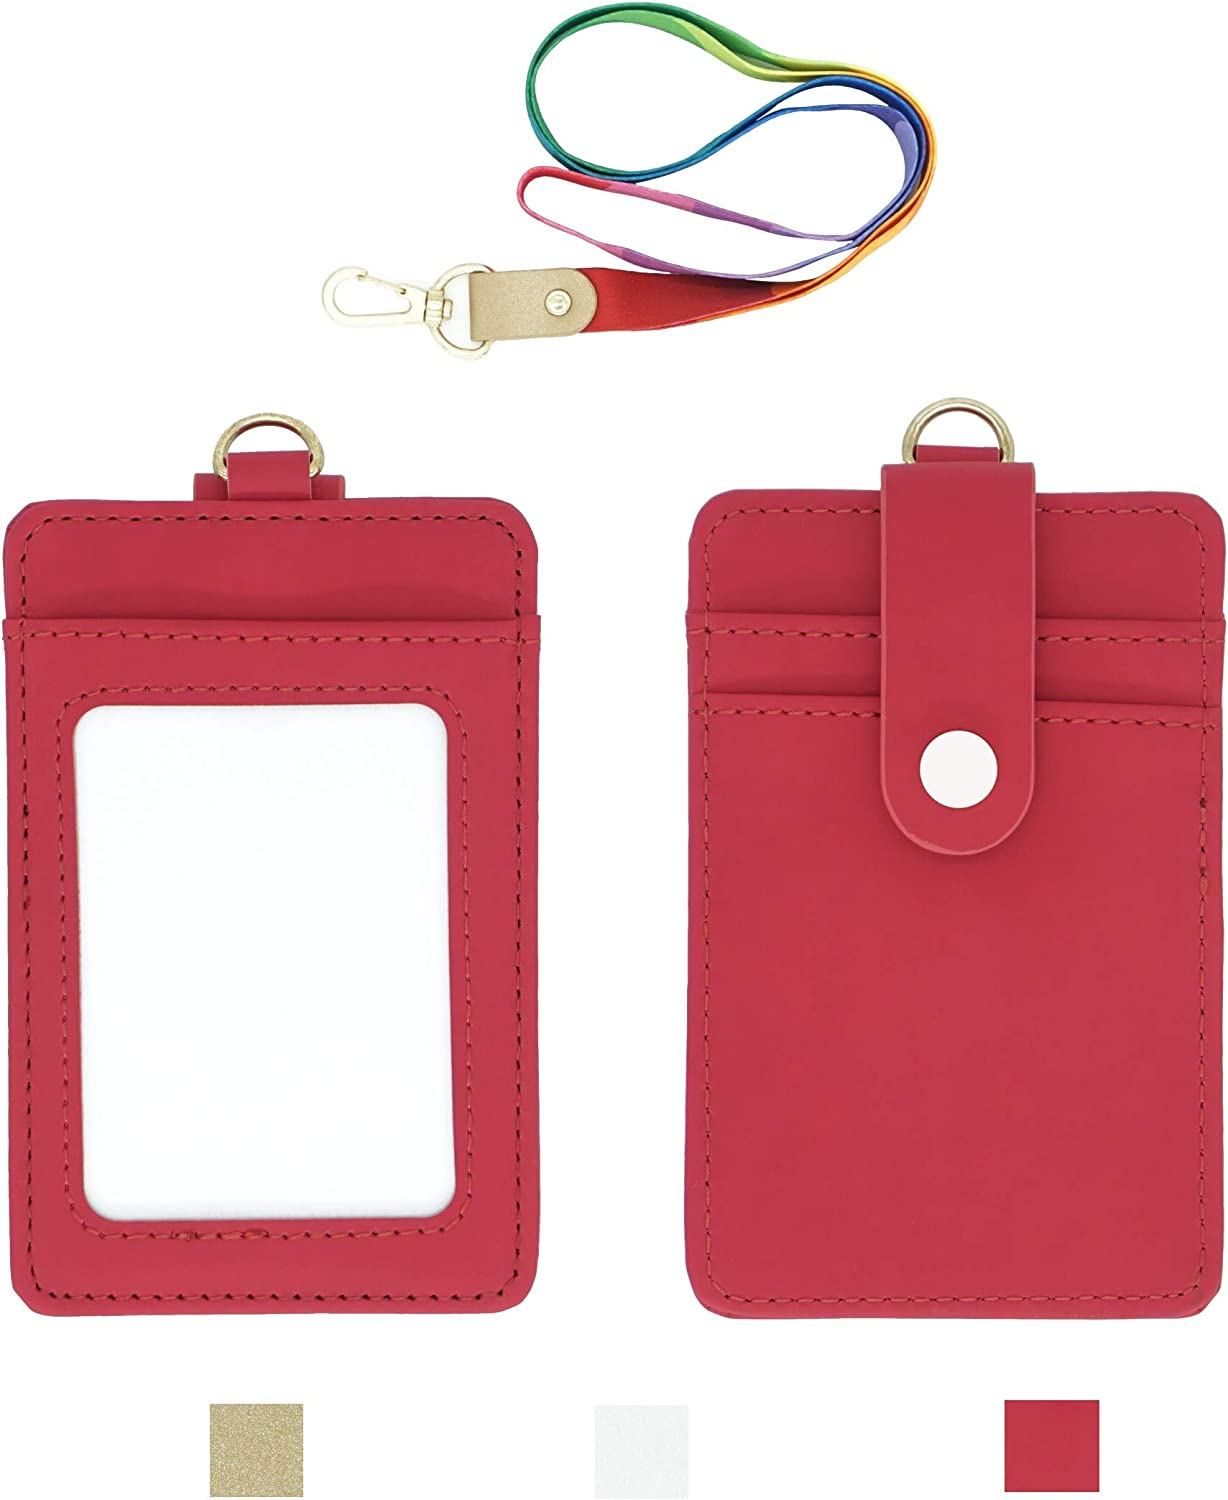 Rosered Lanyard with ID Badge Holder, PU Leather Office Card Holders with 1 Clear Vertical Window, Extra 2 Back Credit Card Slots with Button and One Detachable Neck Lanyard